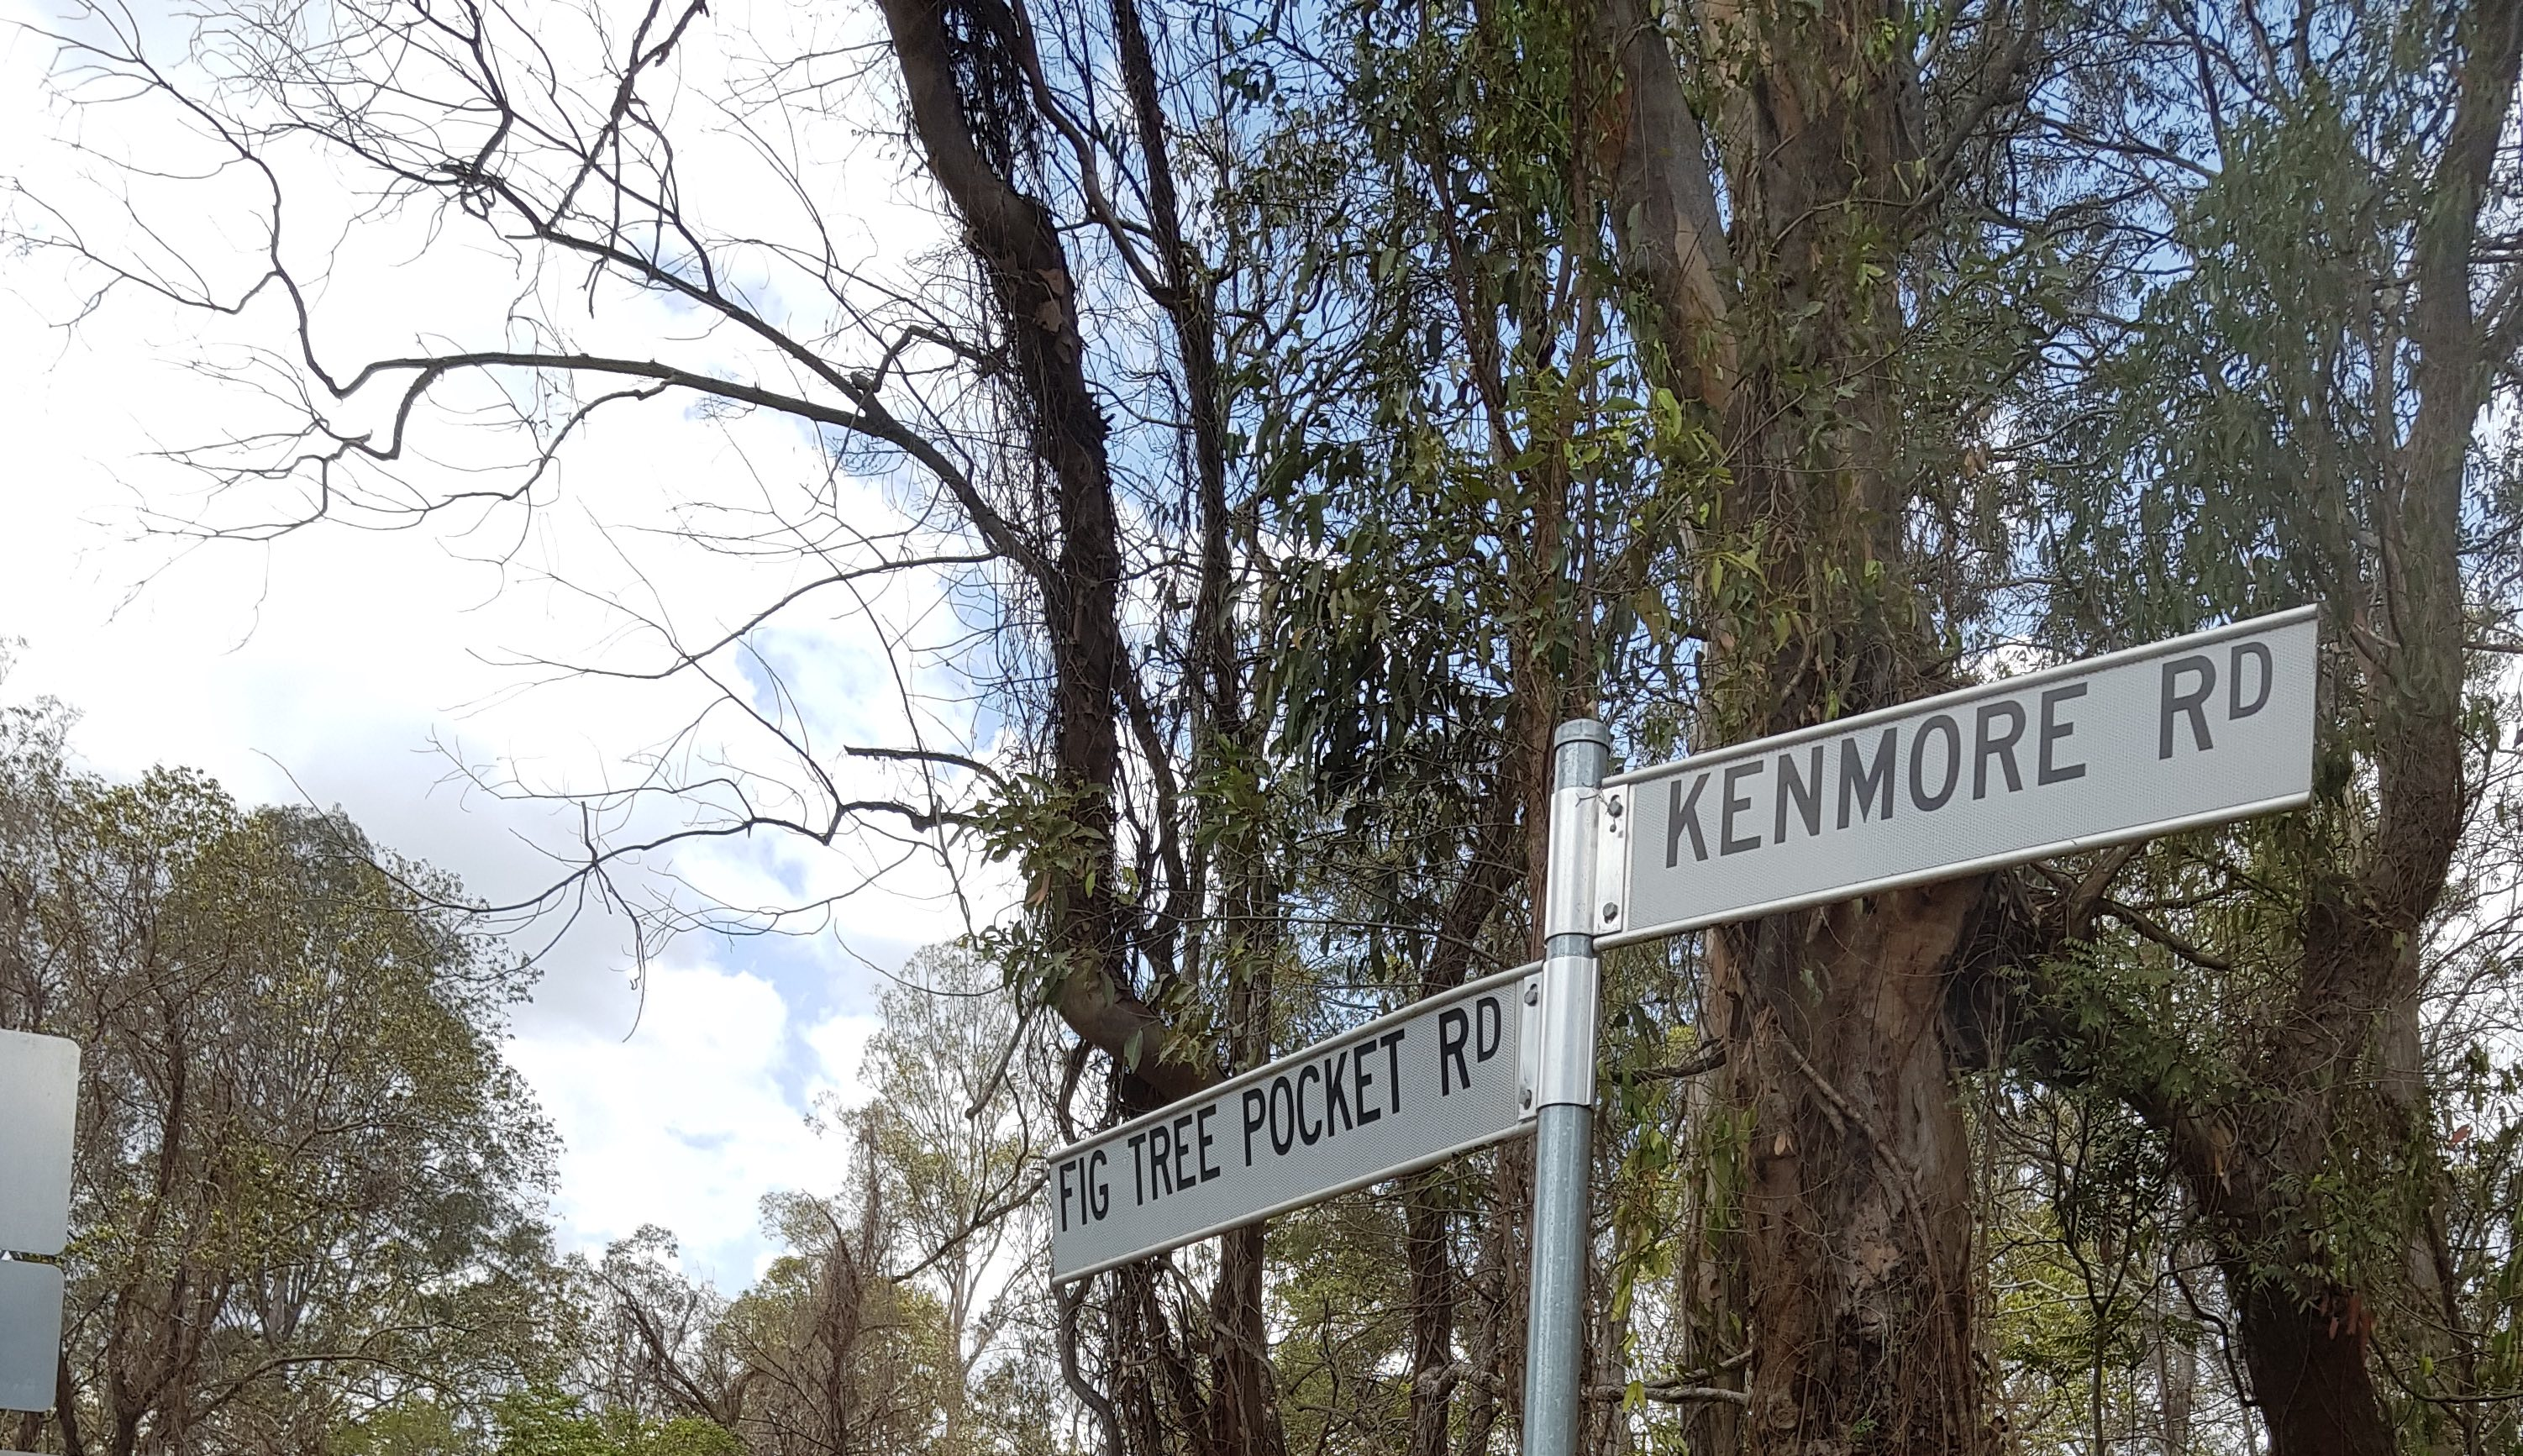 As Fig Tree Pocket changes, we need to make our streets safe for everyone.